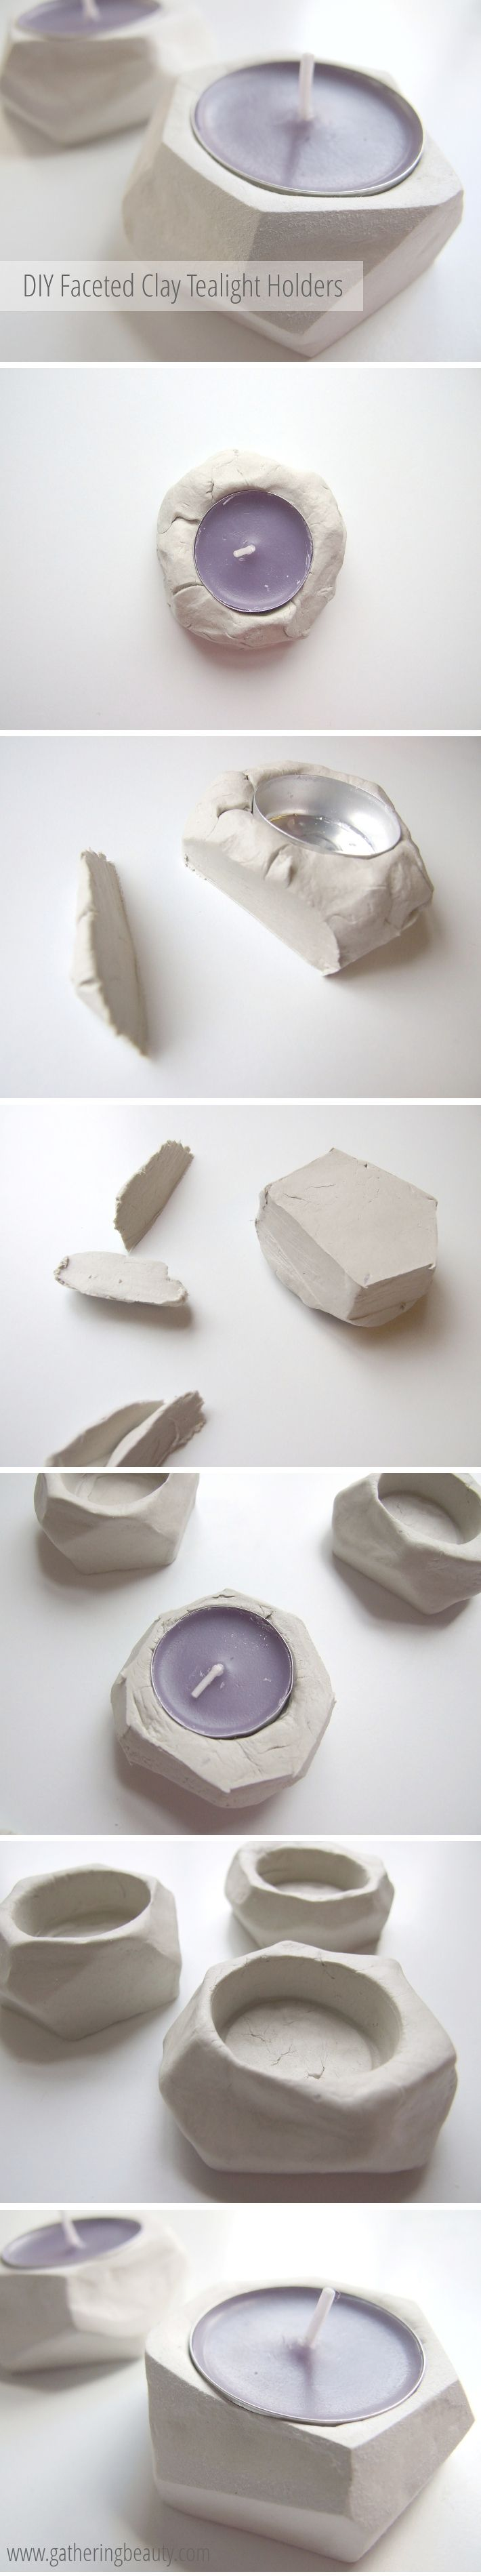 40 Extremely Clever DIY Candle Holders Projects For Your Home  homesthetics decor (13)